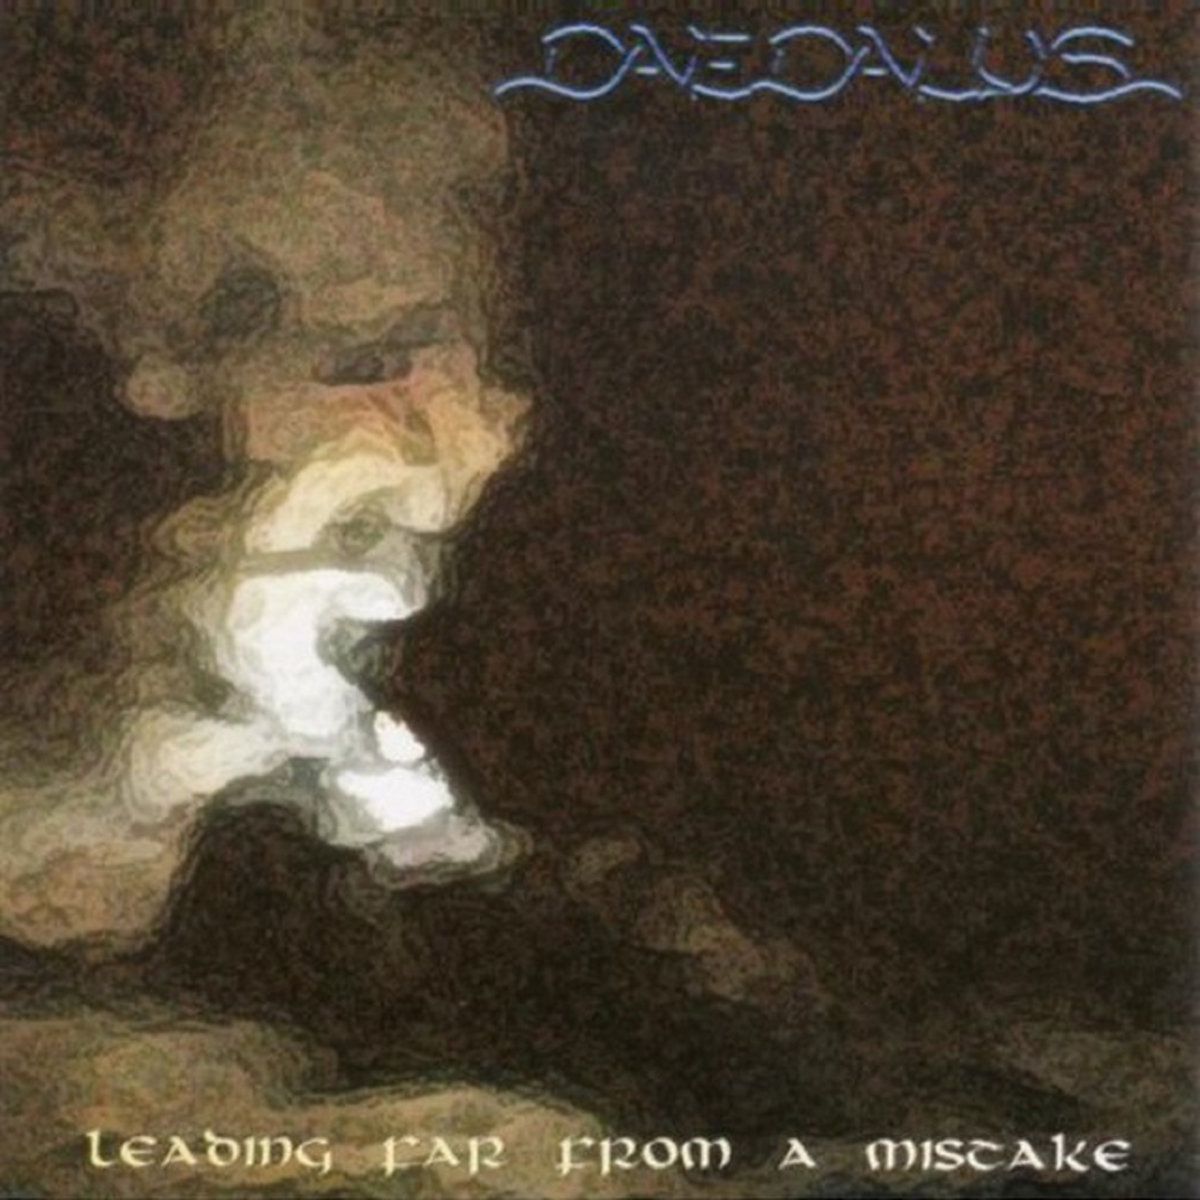 Daedalus - Leading Far From A Mistake